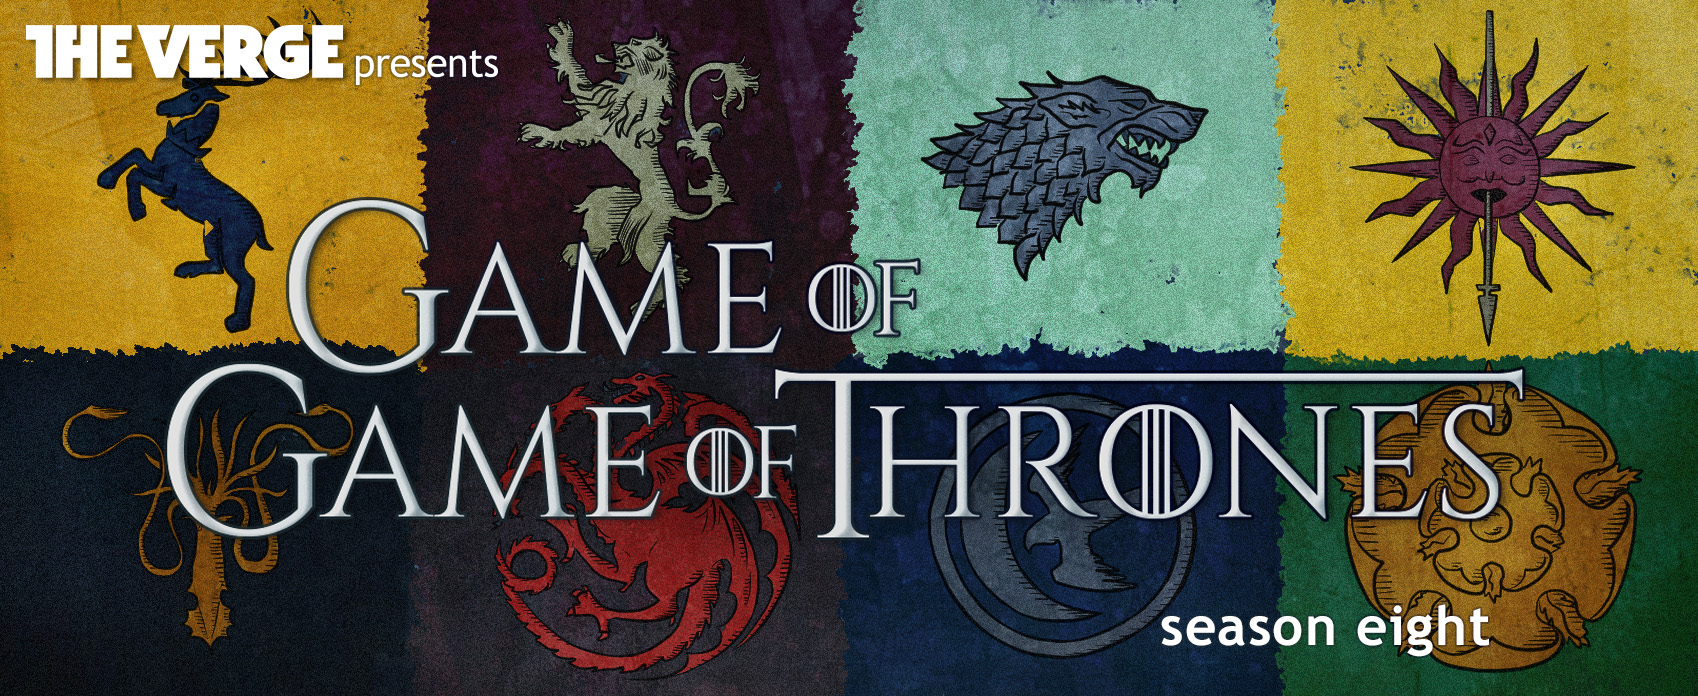 The Game of Game of Thrones: Season 8